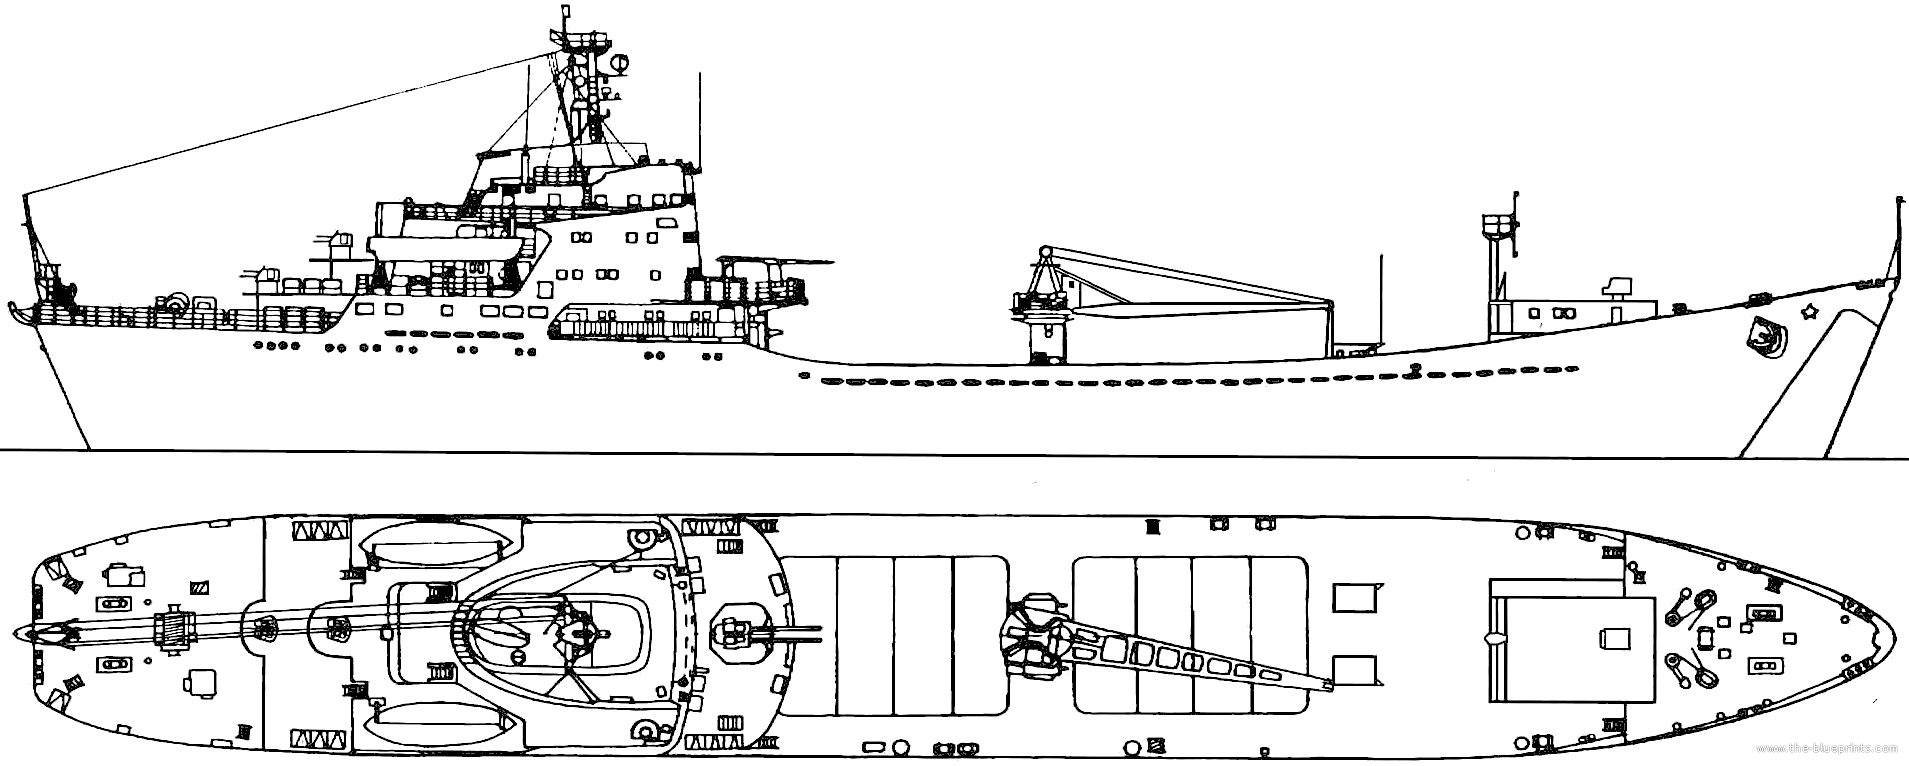 Ships Blueprints http://www.the-blueprints.com/blueprints/ships/ships-russia/43922/view/ussr_nikolai_filchenkov_(alligator_class_project_landing_ship)/